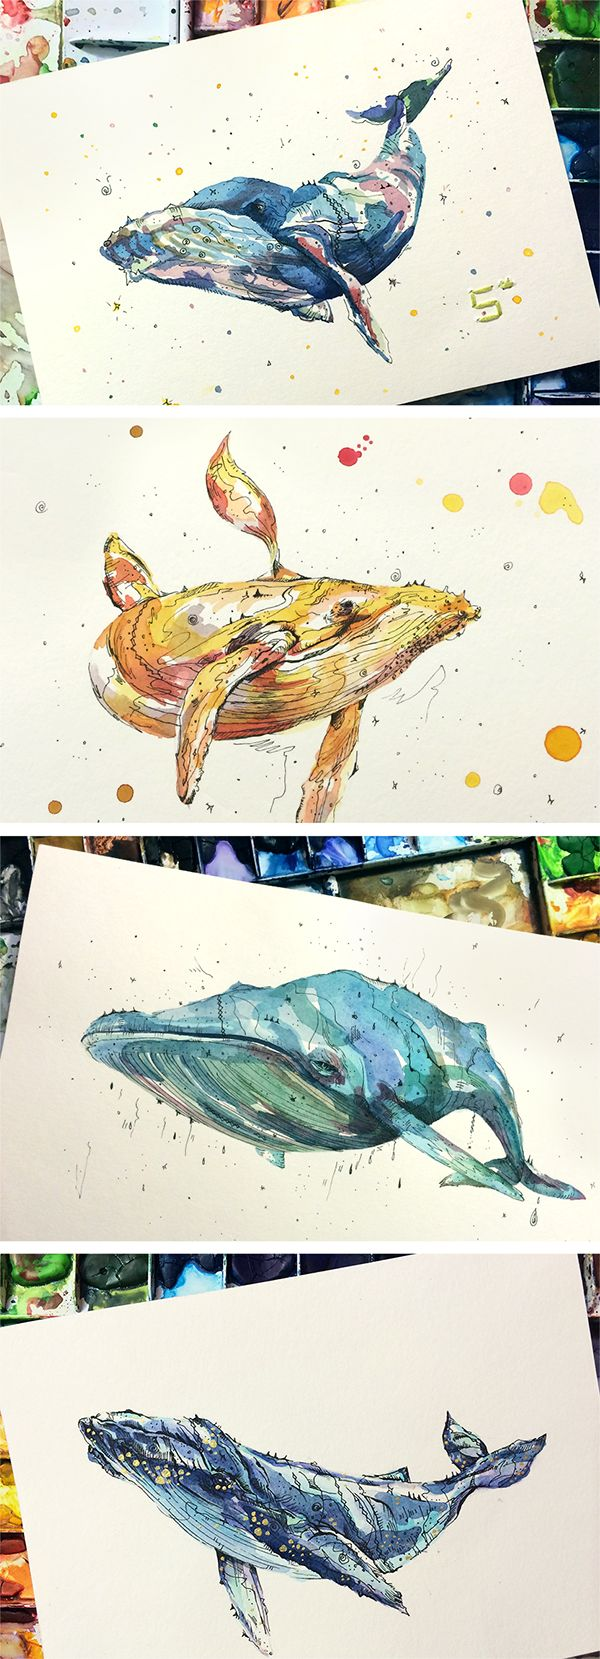 Whale watercolor series - sujinlee